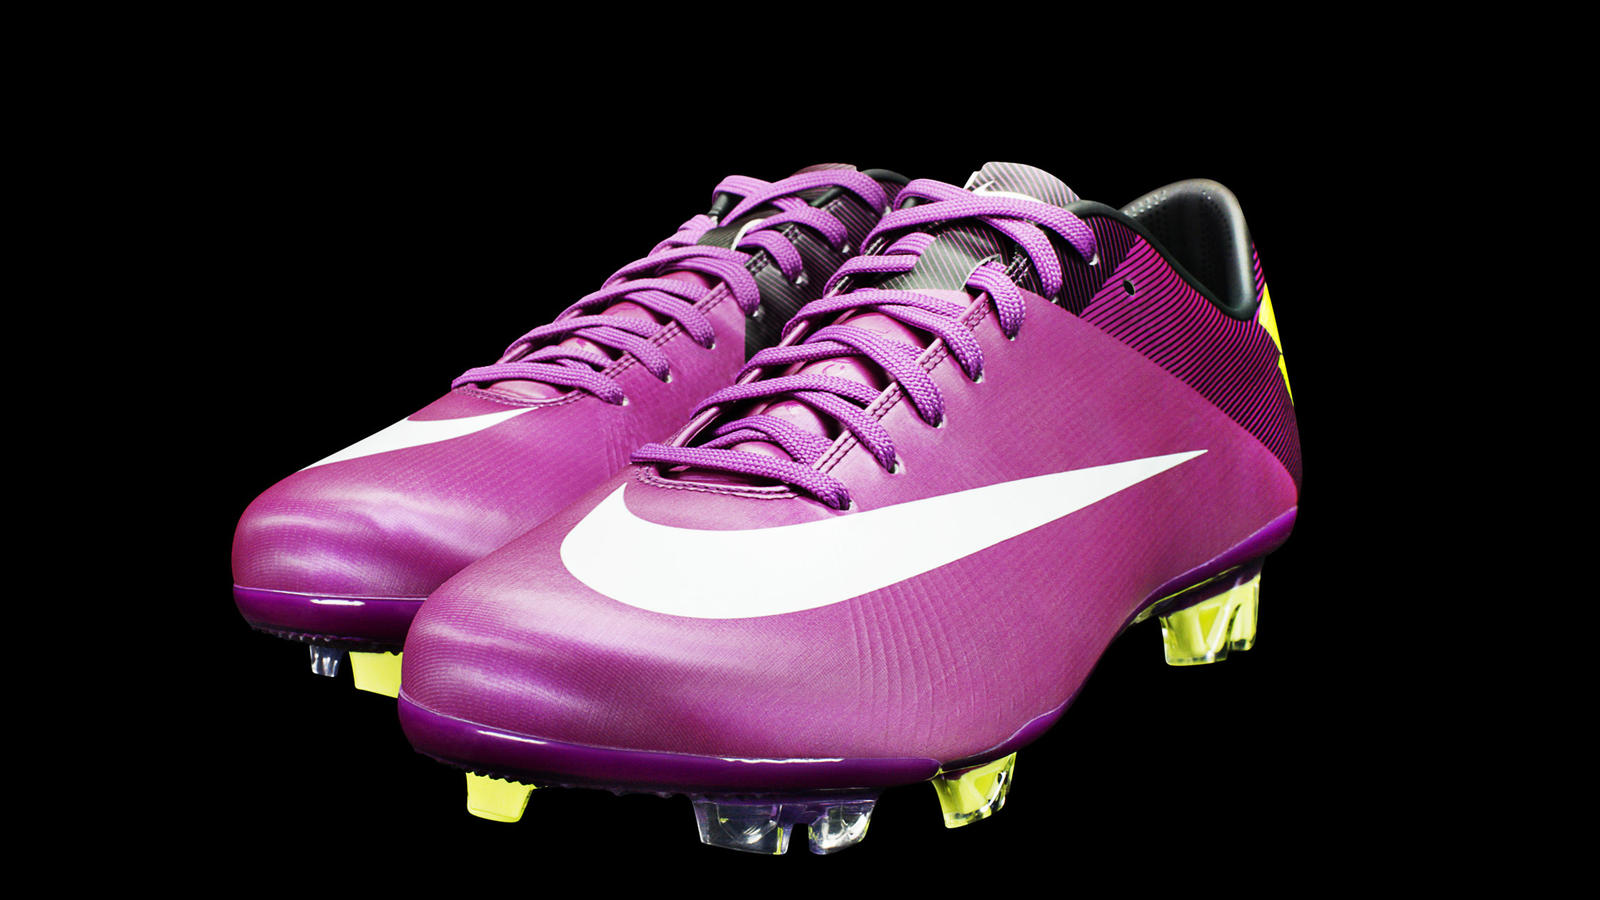 M27_NIKE_MERCURIAL 083_3 copy